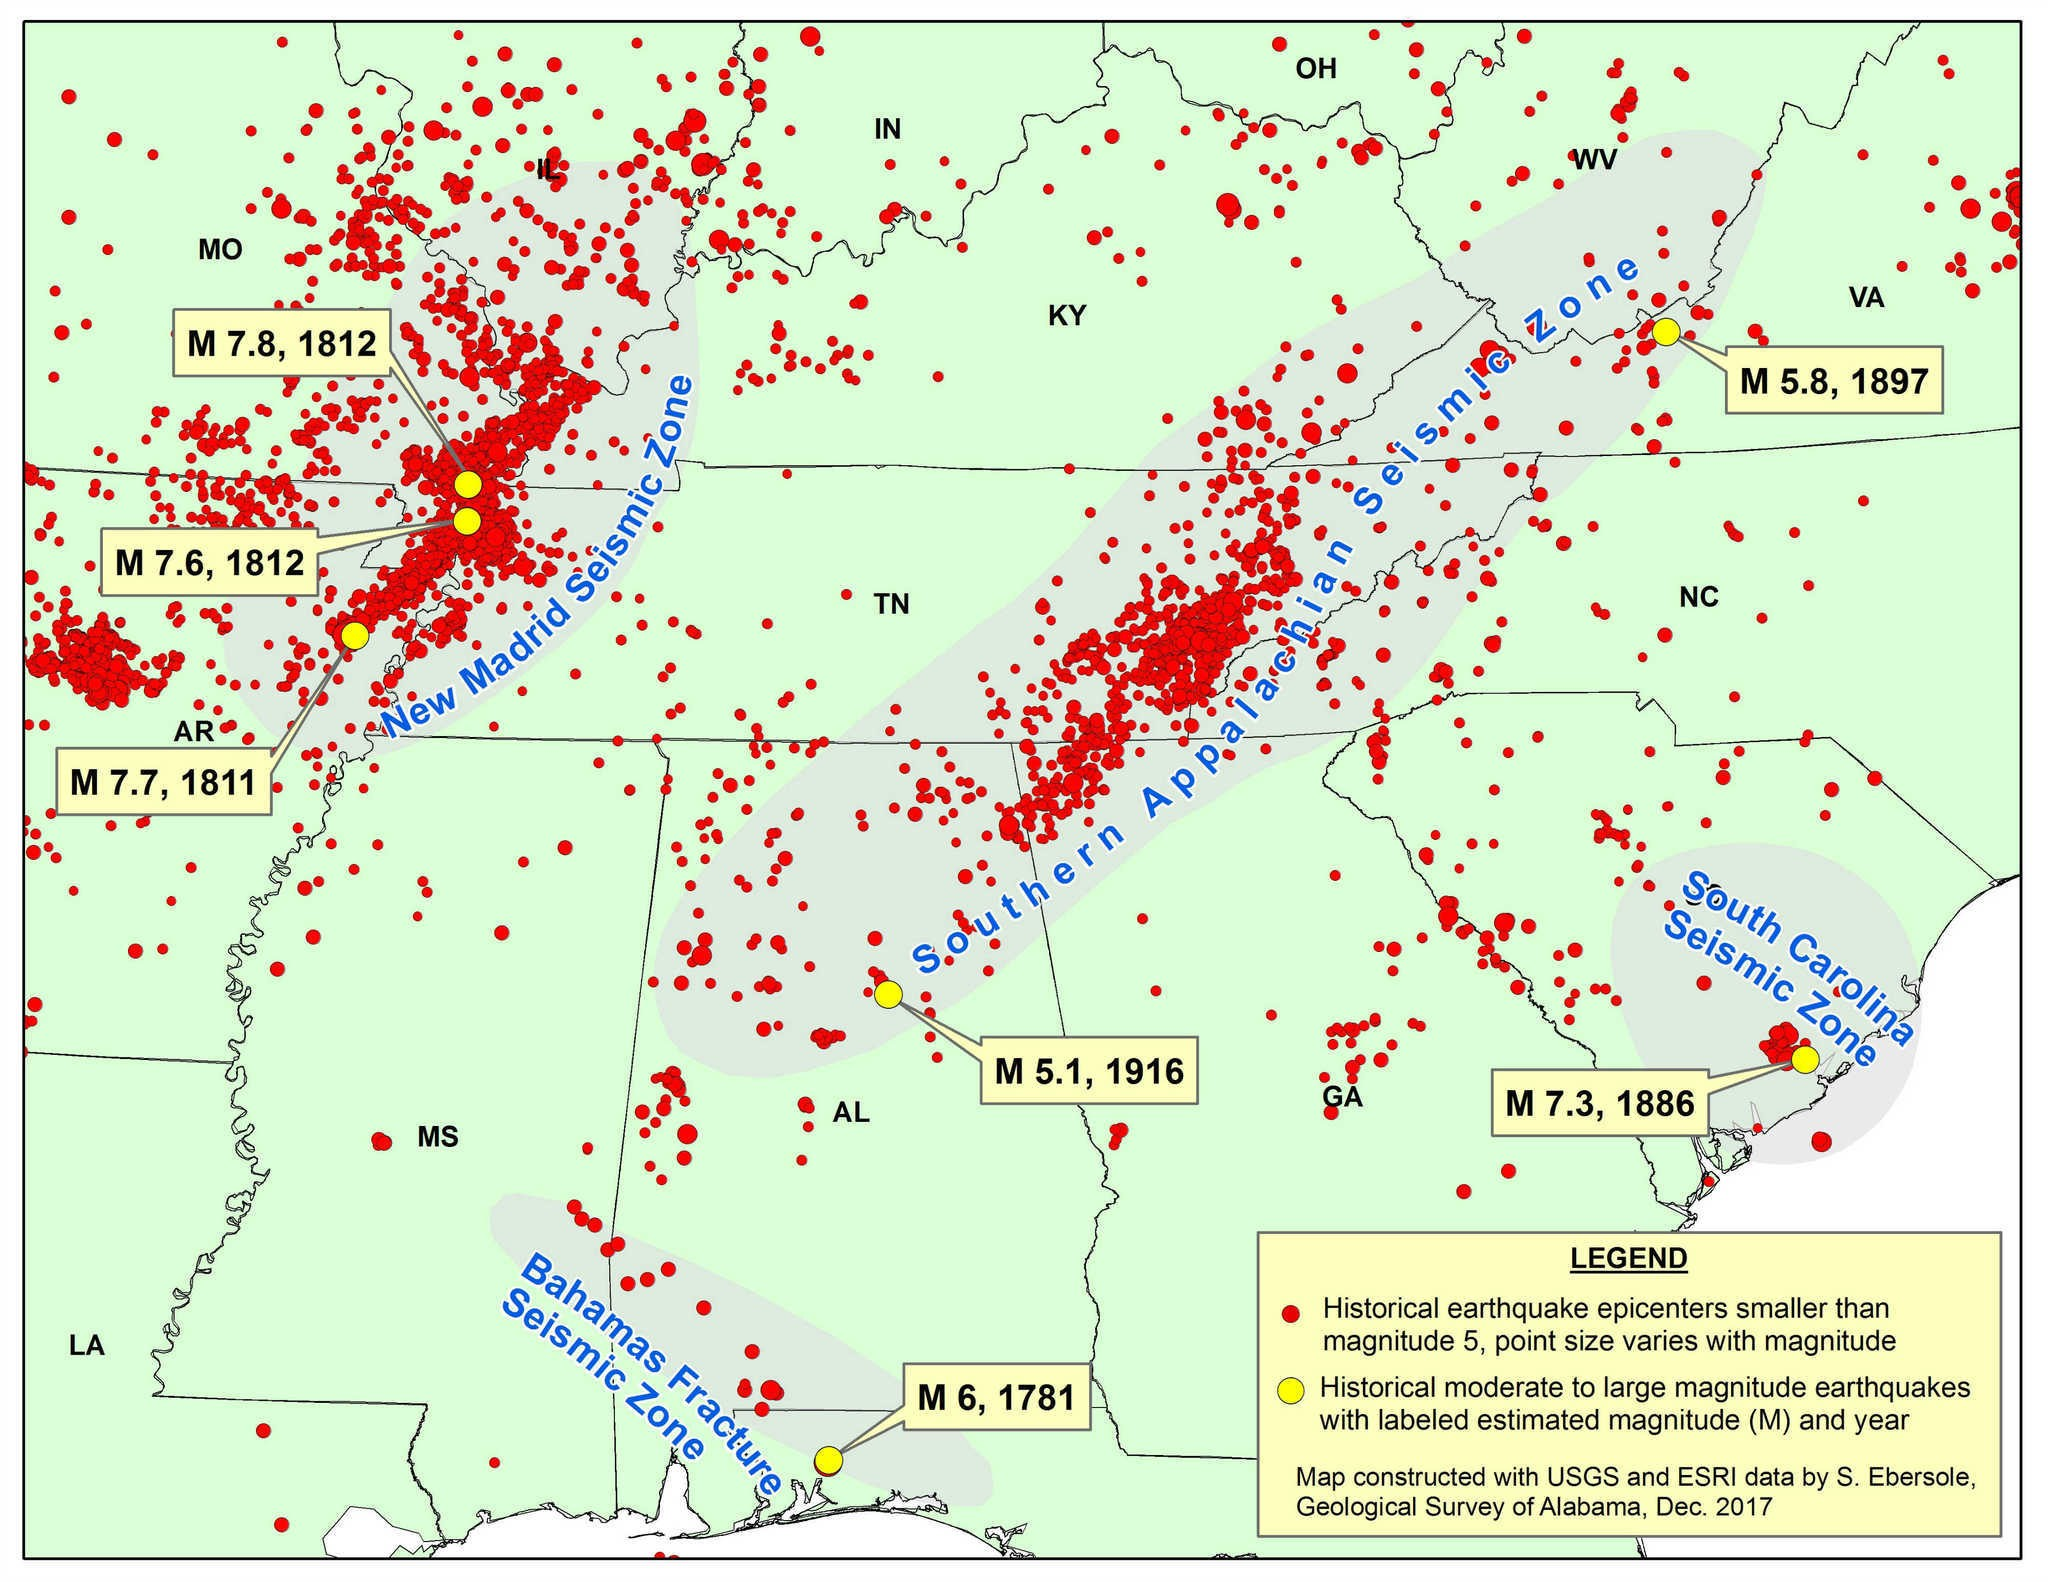 3 earthquakes in a week still 'normal seismic activity' - al.com on new madrid earthquake, san andreas fault line map, midcontinent rift system, cascadia subduction zone, major us fault line map, midwest fault line map, wabash valley seismic zone, san juan fault line map, charleston earthquake, san francisco fault line map, california hayward fault line map, indiana fault line map, humboldt fault, east african rift, world fault line map, new madrid fault predictions map, seattle fault, israel fault line map, wasatch fault, new madrid fault navy map, las vegas fault line map, ramapo fault, virginia seismic zone, kentucky bend, east coast fault line map, moab fault, 1968 illinois earthquake, sandwich fault line map, new madrid fault damage map, mid-atlantic ridge, sierra nevada fault line map, united states fault line map, u.s. fault line map, rio grande rift, eastern tennessee seismic zone, vancouver fault line map, fault lines in oklahoma map, new madrid,